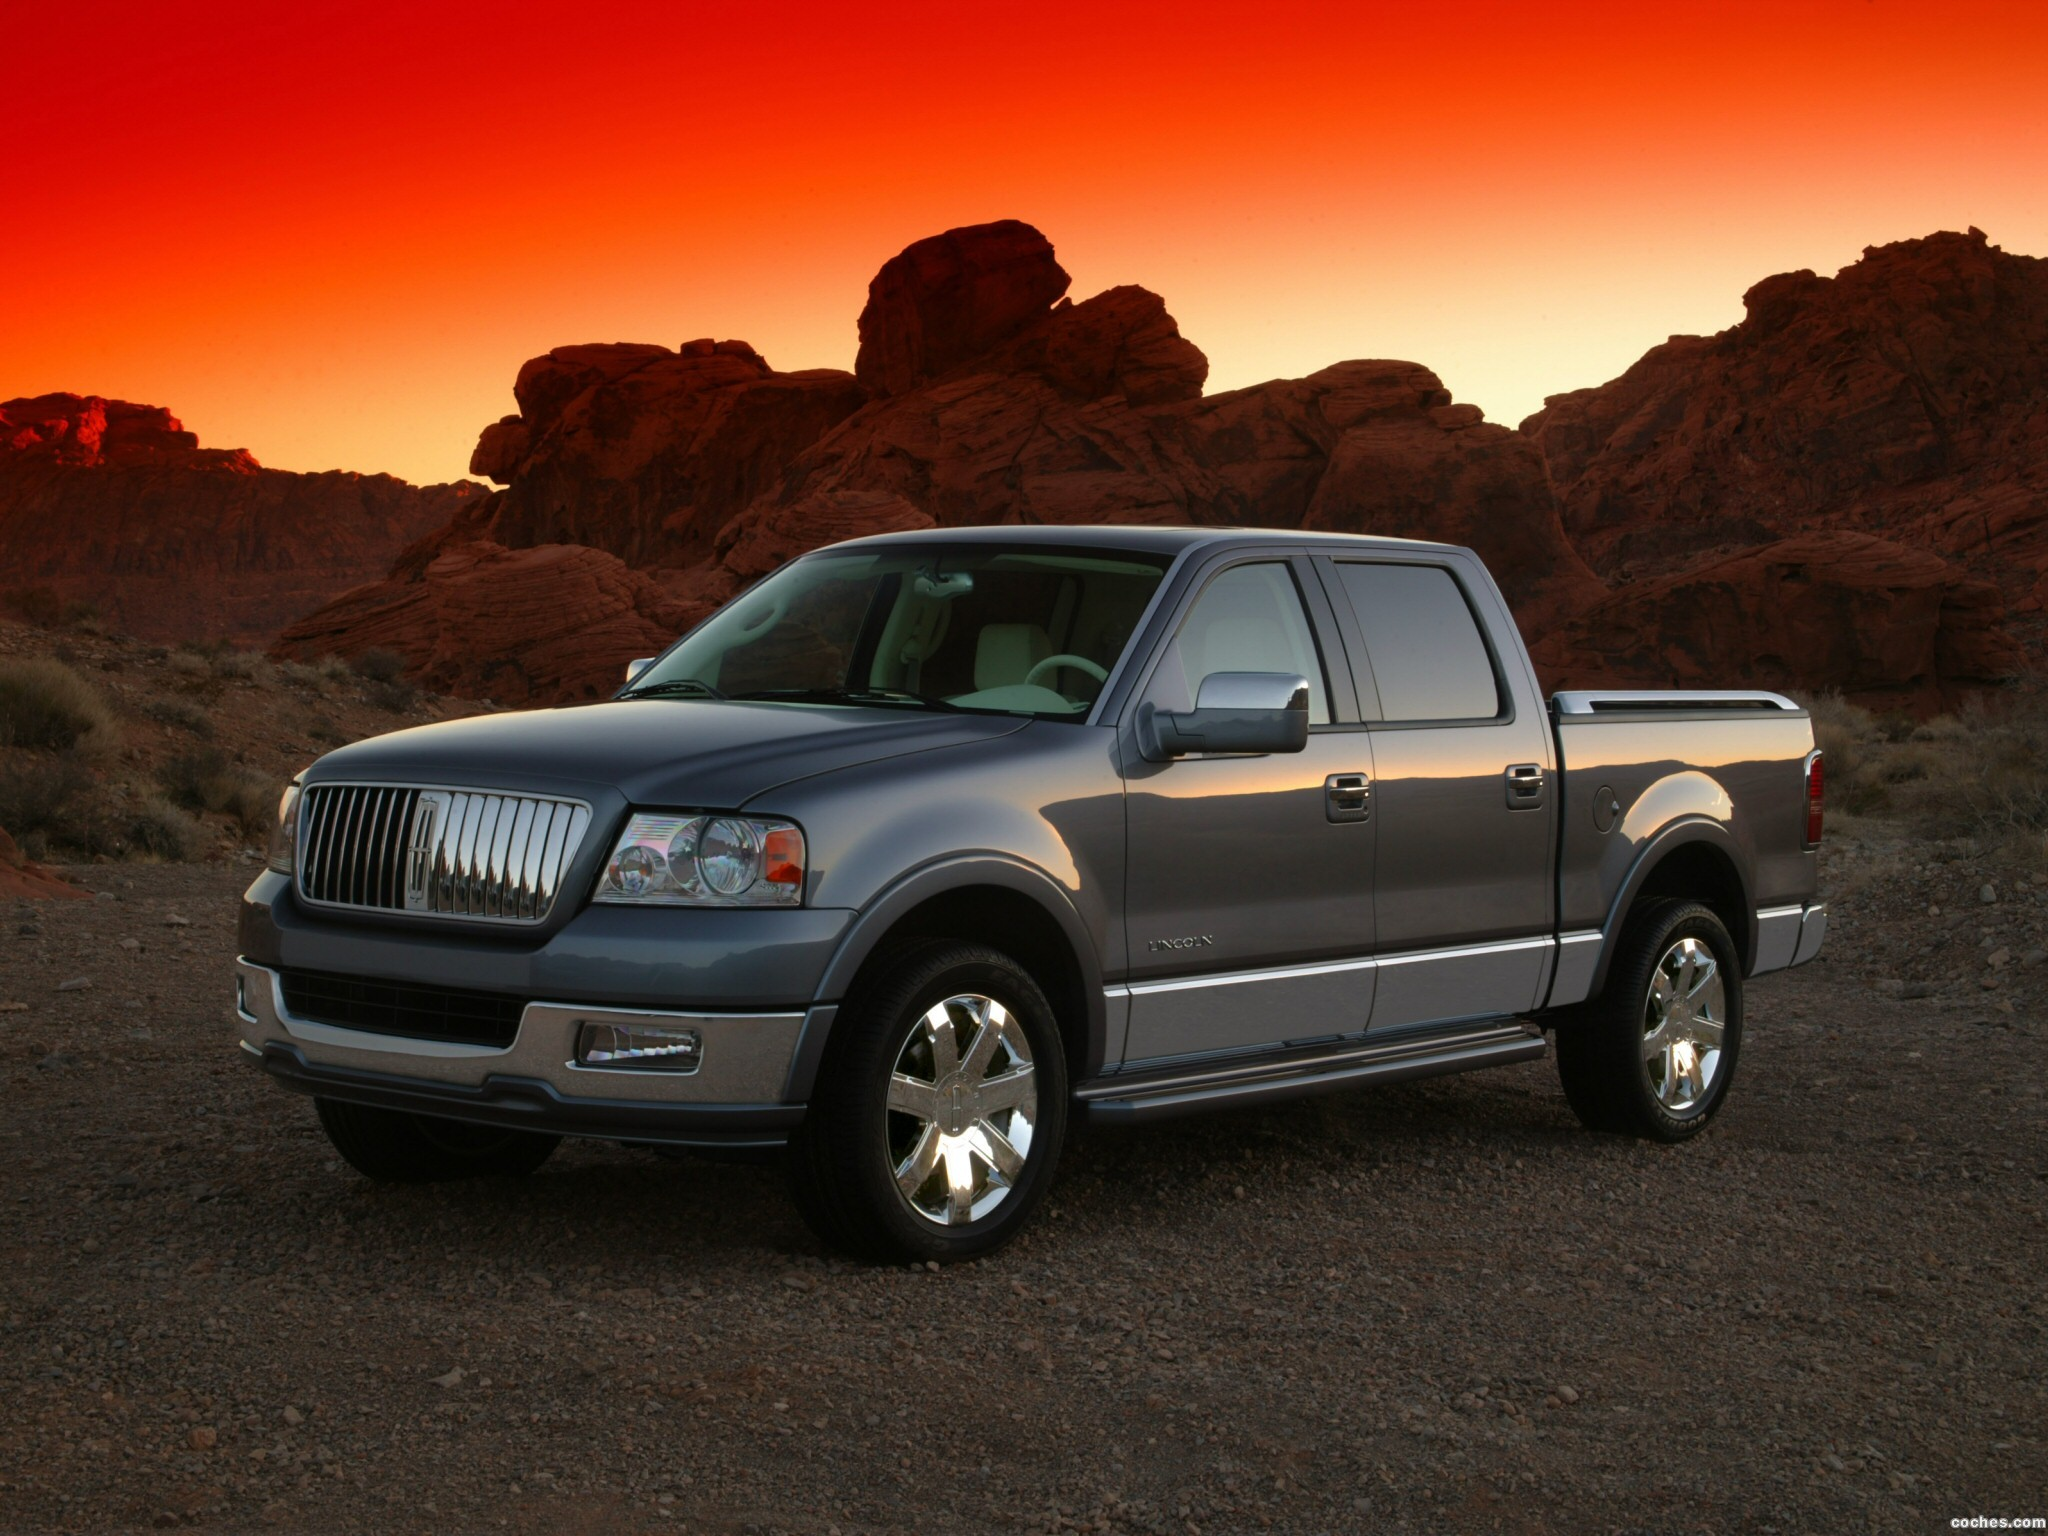 2010 lincoln mark lt first drive review car and driver. Black Bedroom Furniture Sets. Home Design Ideas